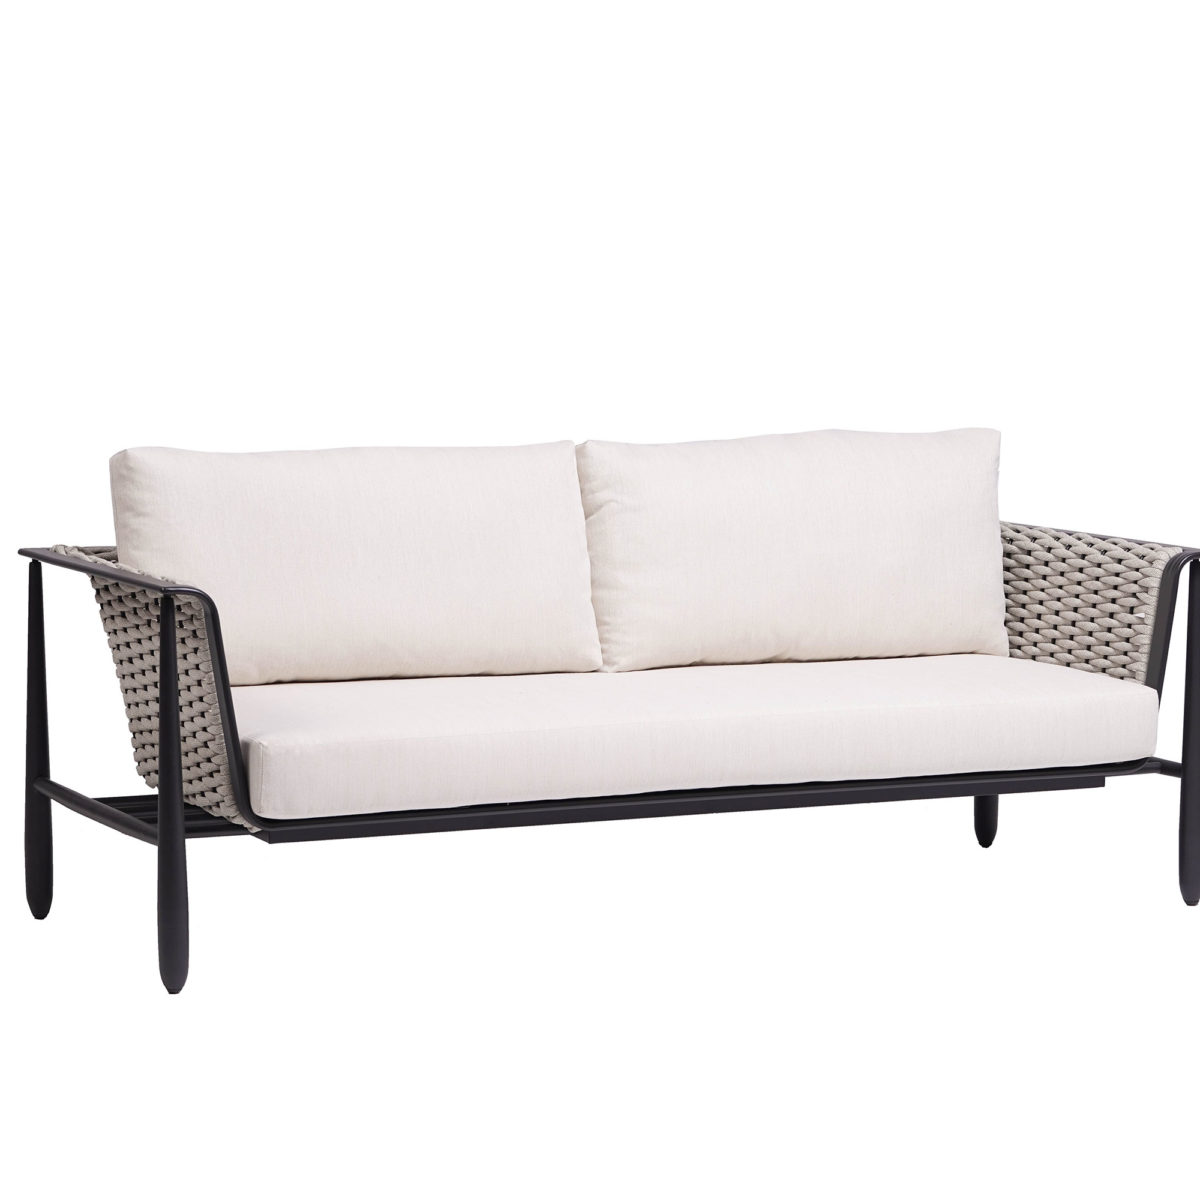 The Diva sofa Ratana in dark grey frame with cream cushions.